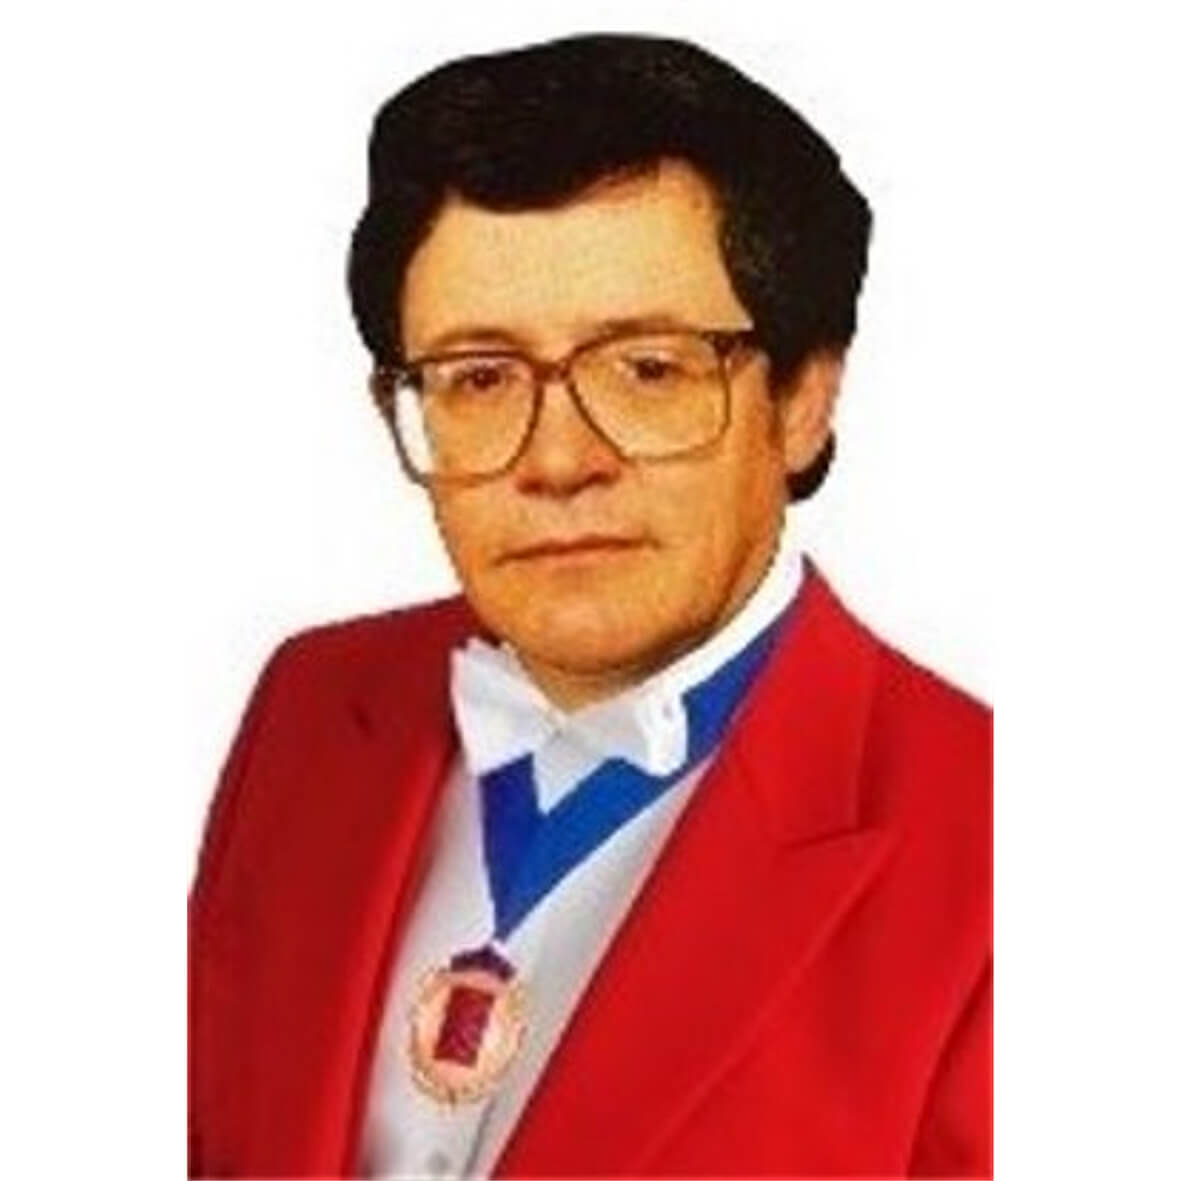 Professional Toastmaster and Master of Ceremonies Yorkshire - Bernard Thain